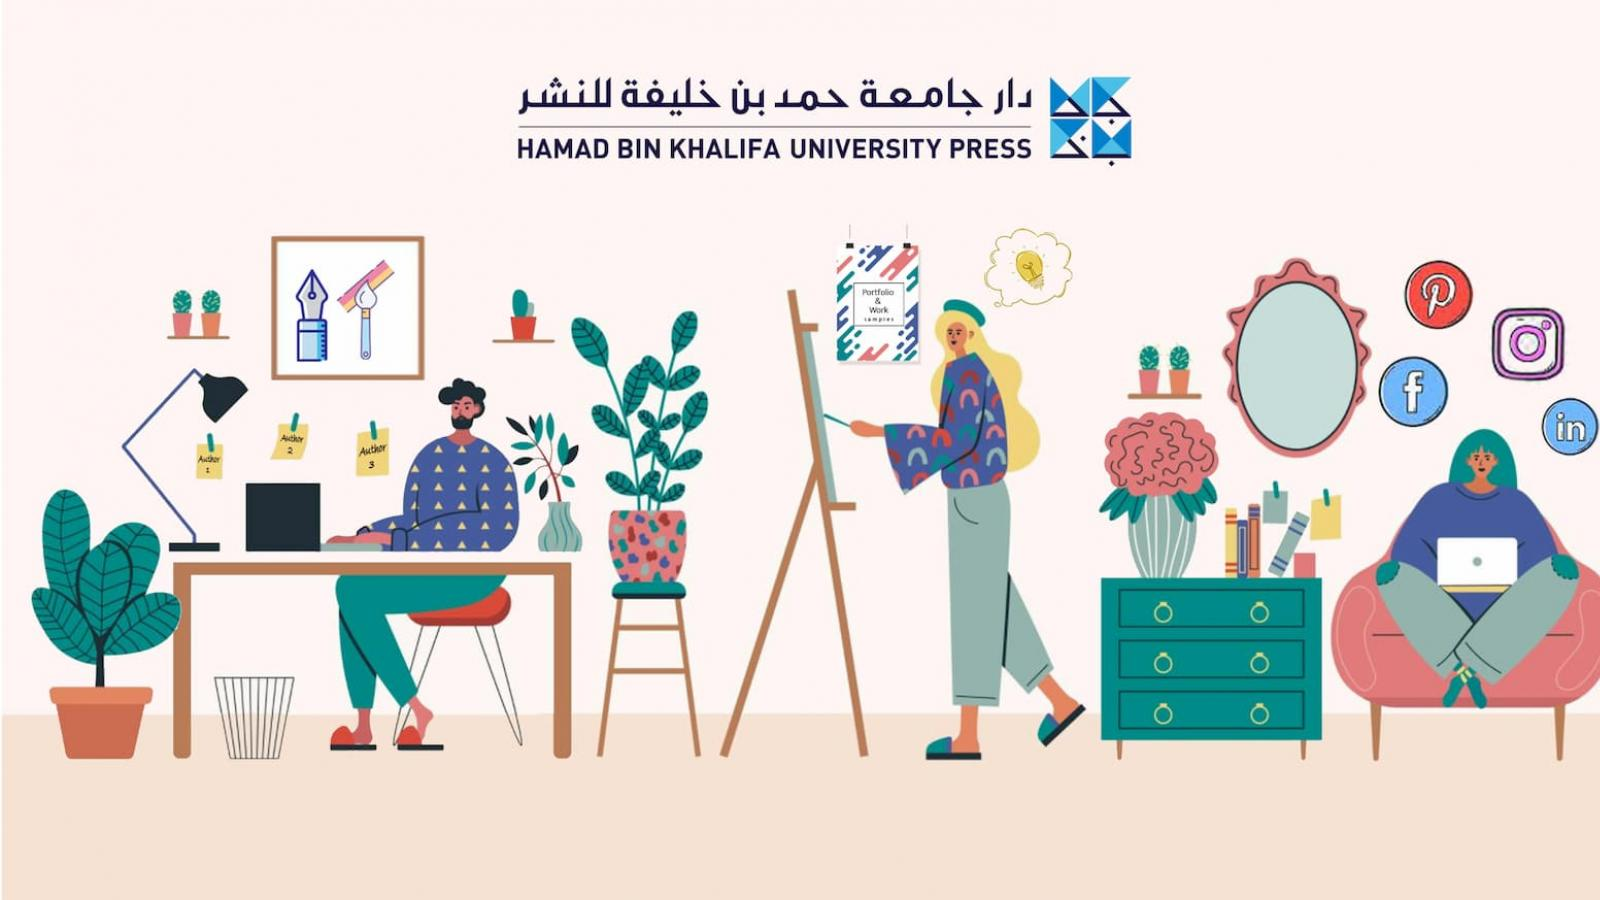 HBKU Press supports local and international artists in publishing sector